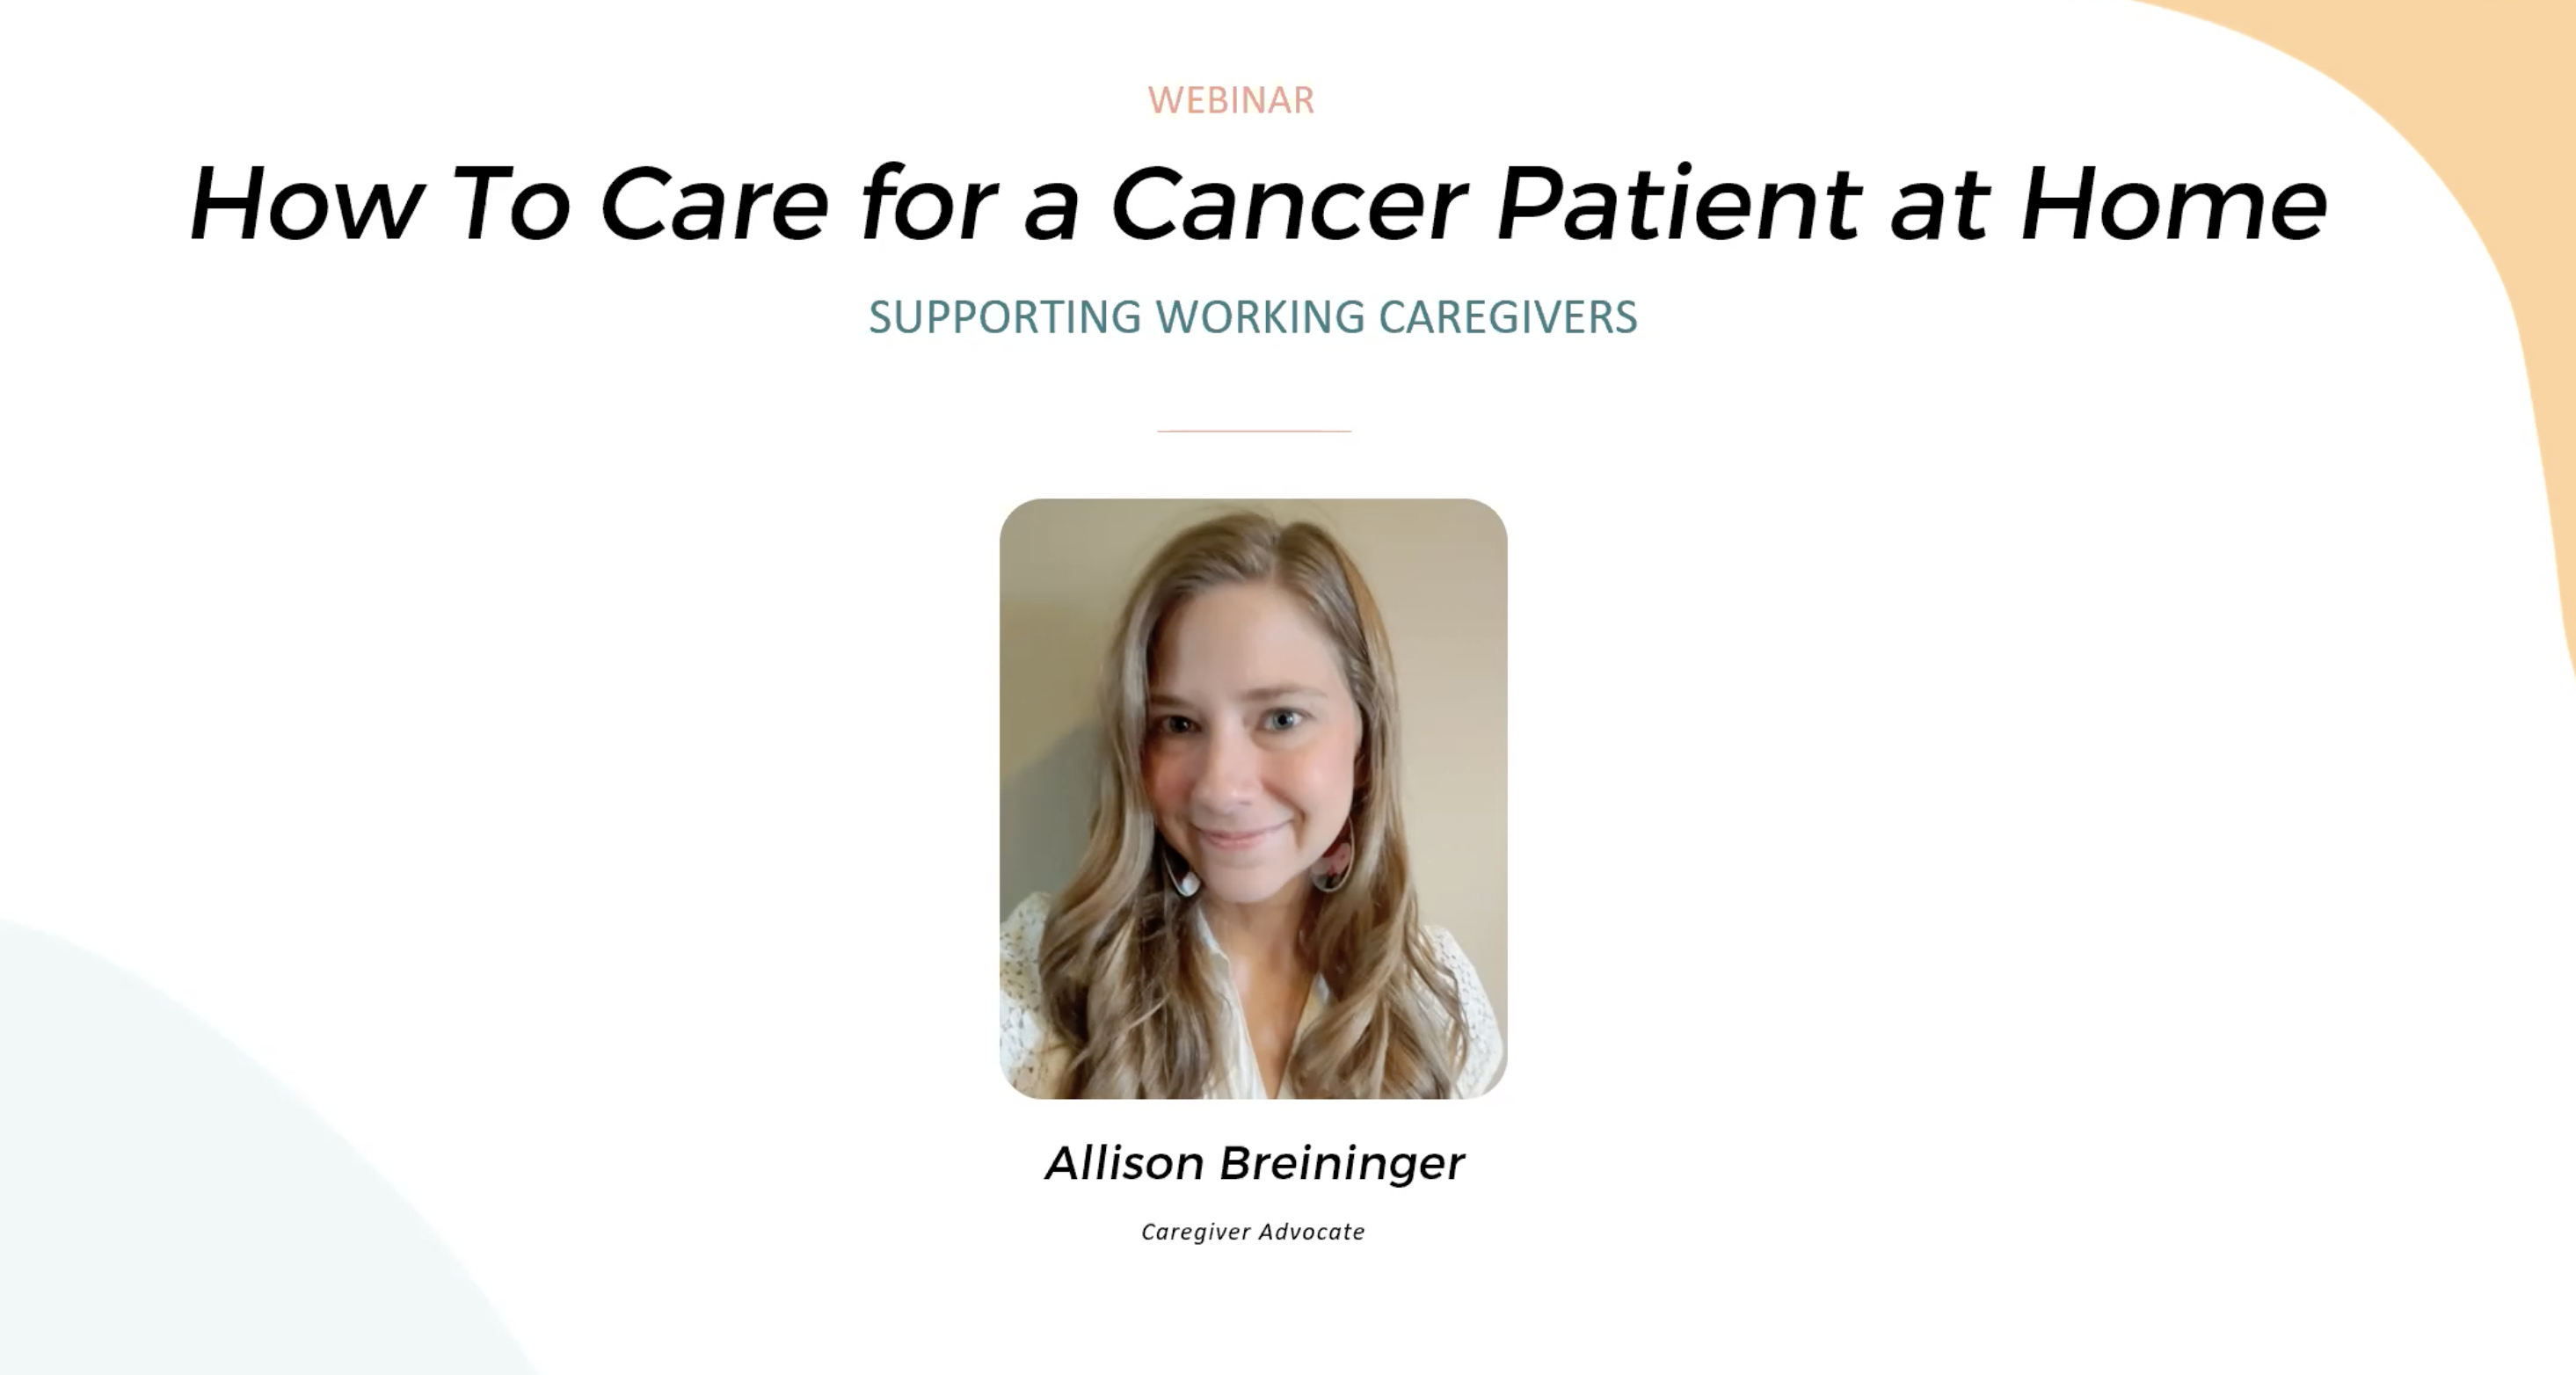 Watch:Caring for a Cancer Patient at Home